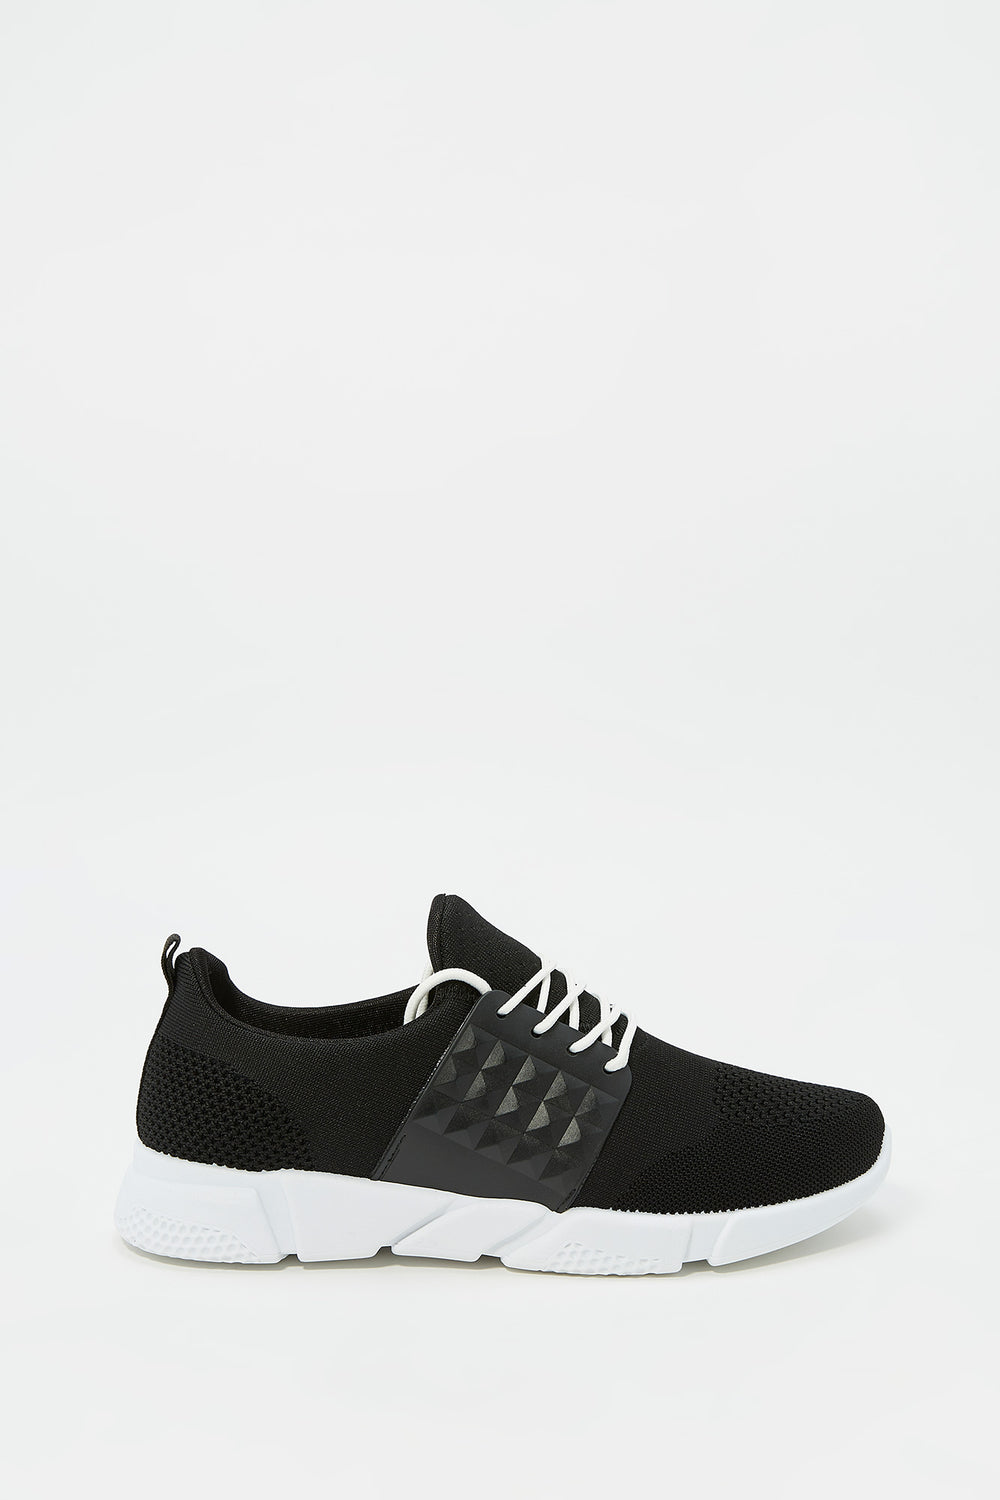 Side Caged Athletic Sneaker Black with White